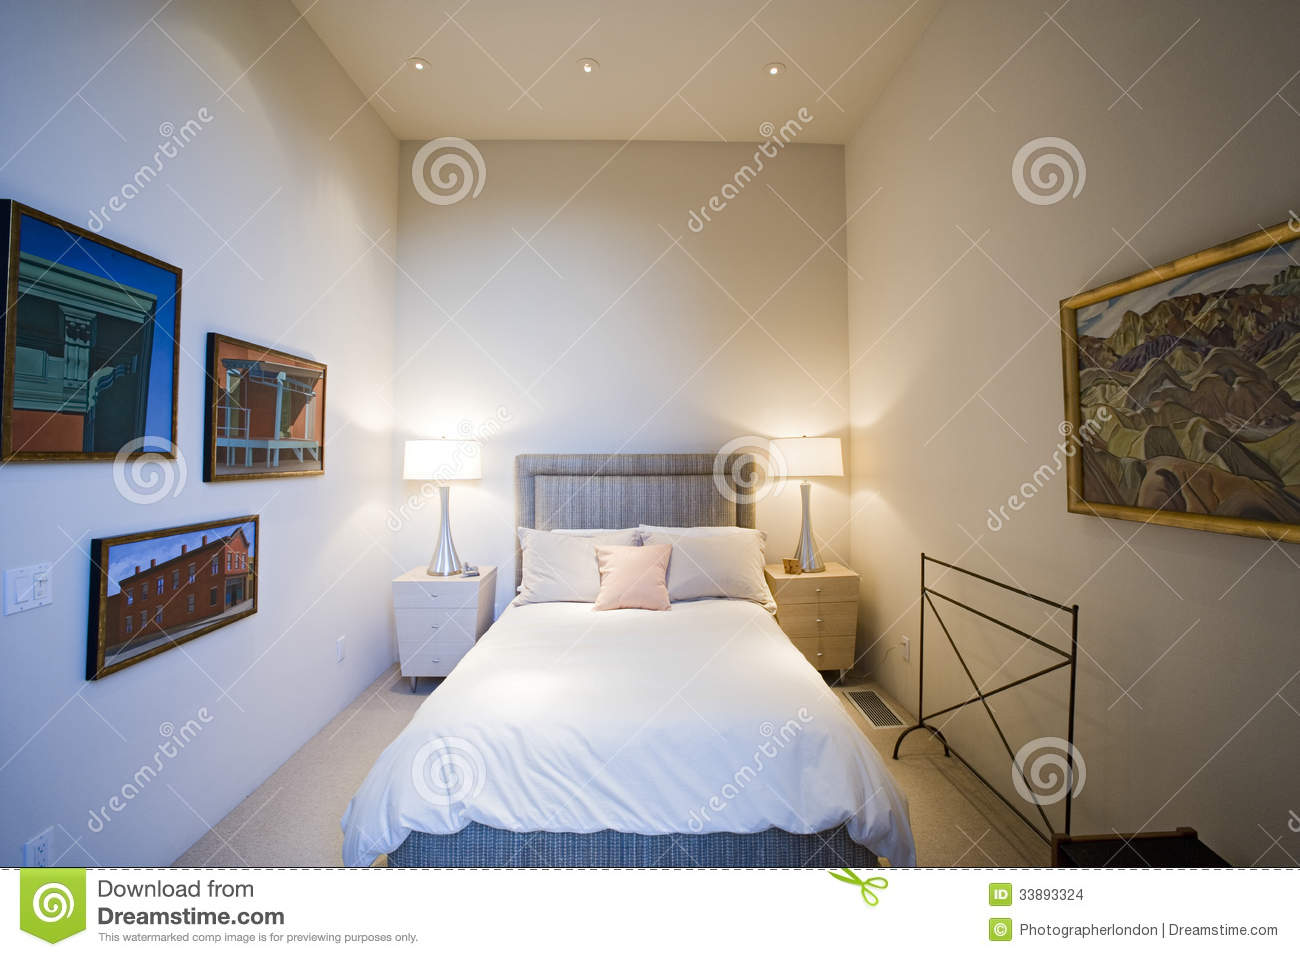 Lit Lamps By Bed With Frames On Wall In Bedroom Stock